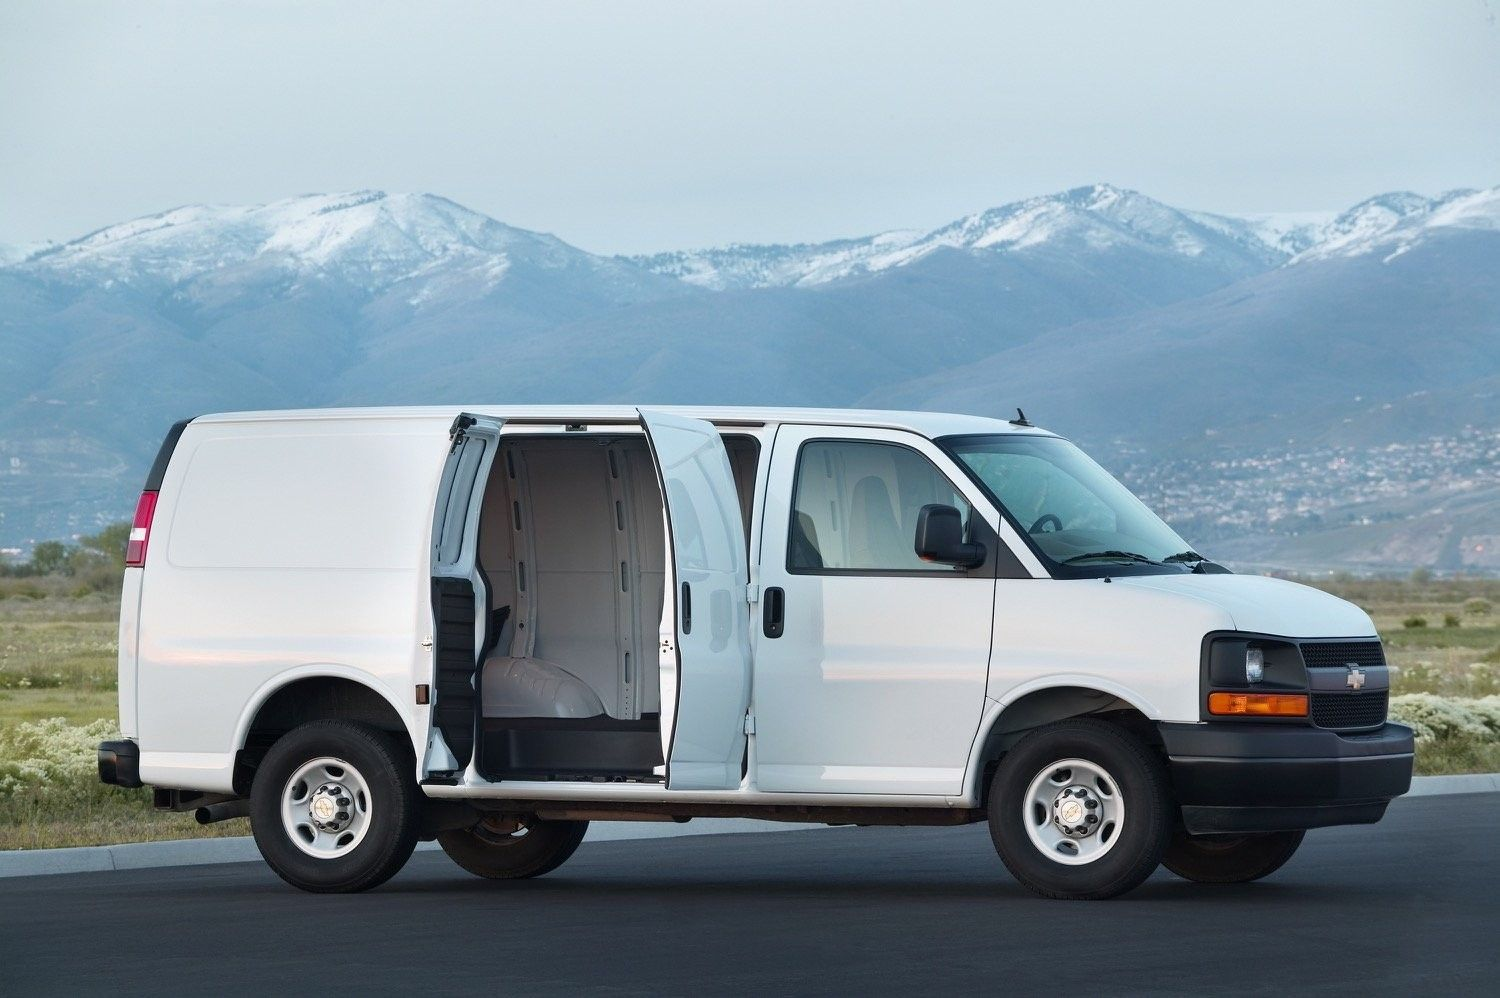 2019 Chevrolet Full Size Van Interior Exterior And Review Car Review 2019 Chevy Express Chevrolet Van Cargo Van